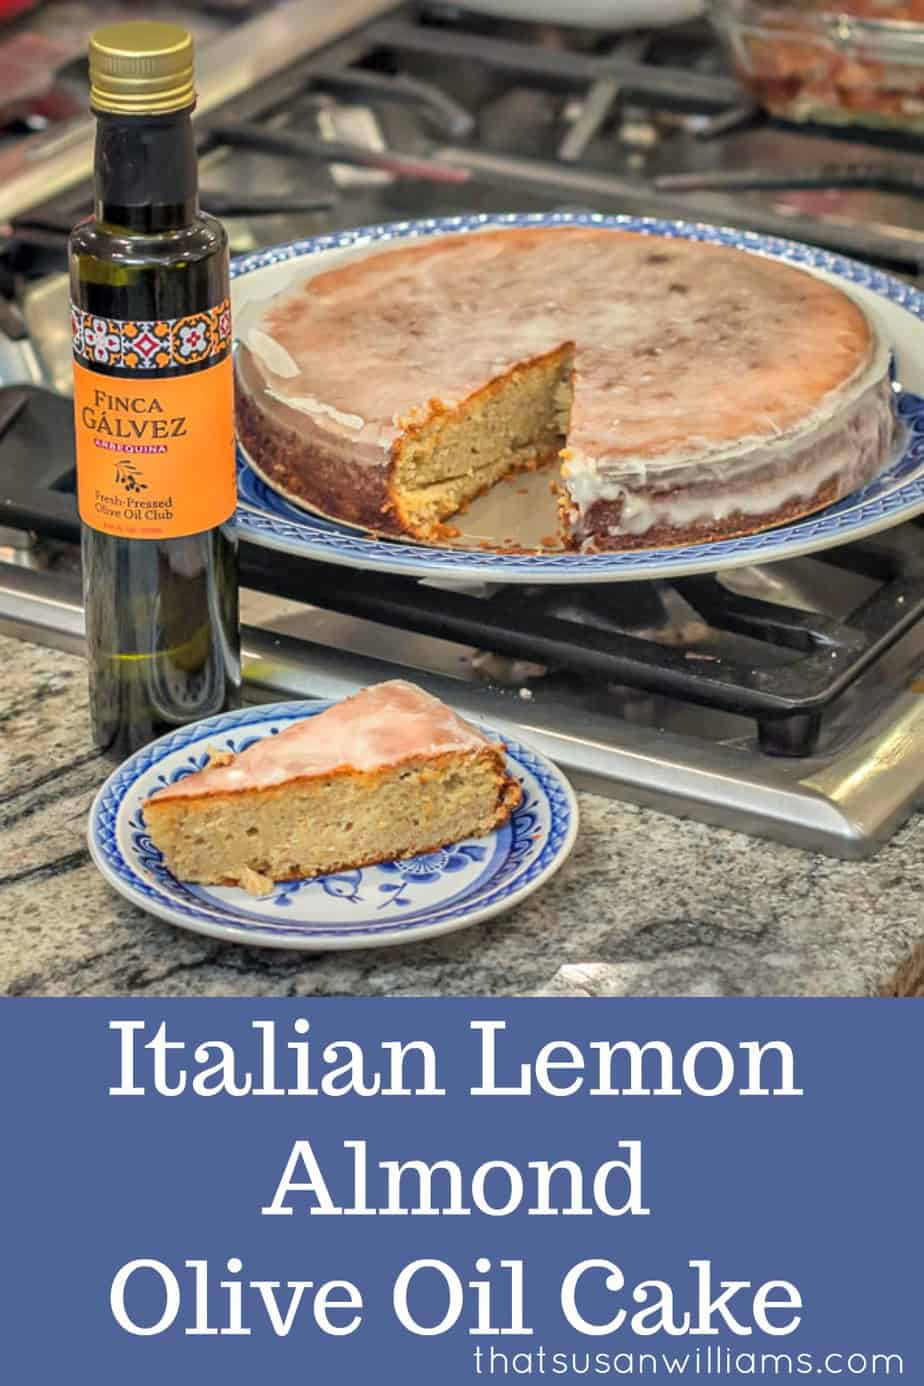 Italian Lemon Almond Olive Oil Cake is a simply delightful dessert, filled with complex flavors and a moist texture.